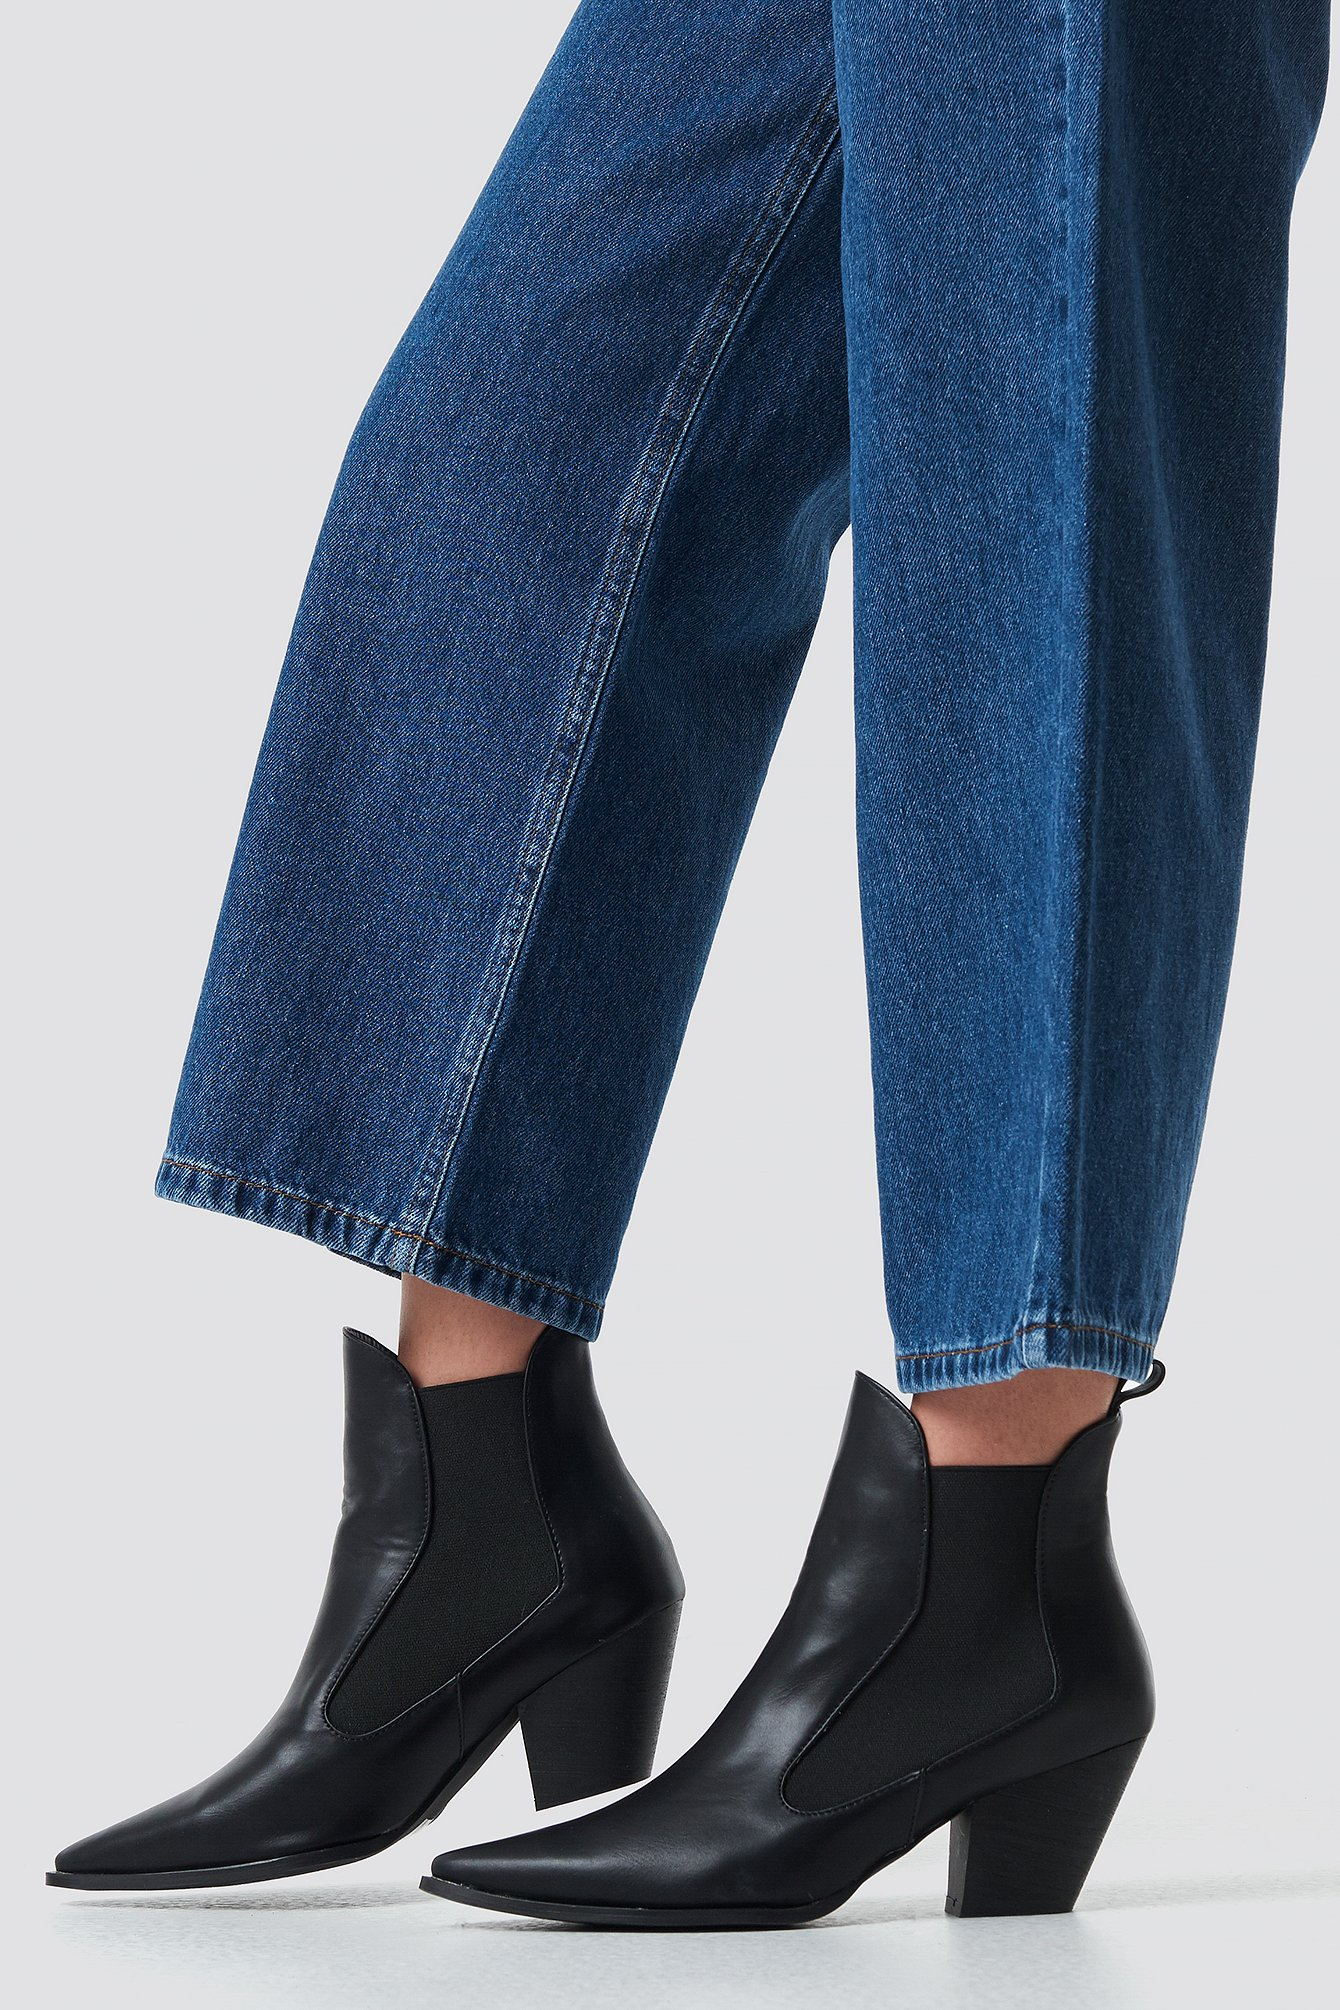 Flick Ankle Boot NA-KD.COM